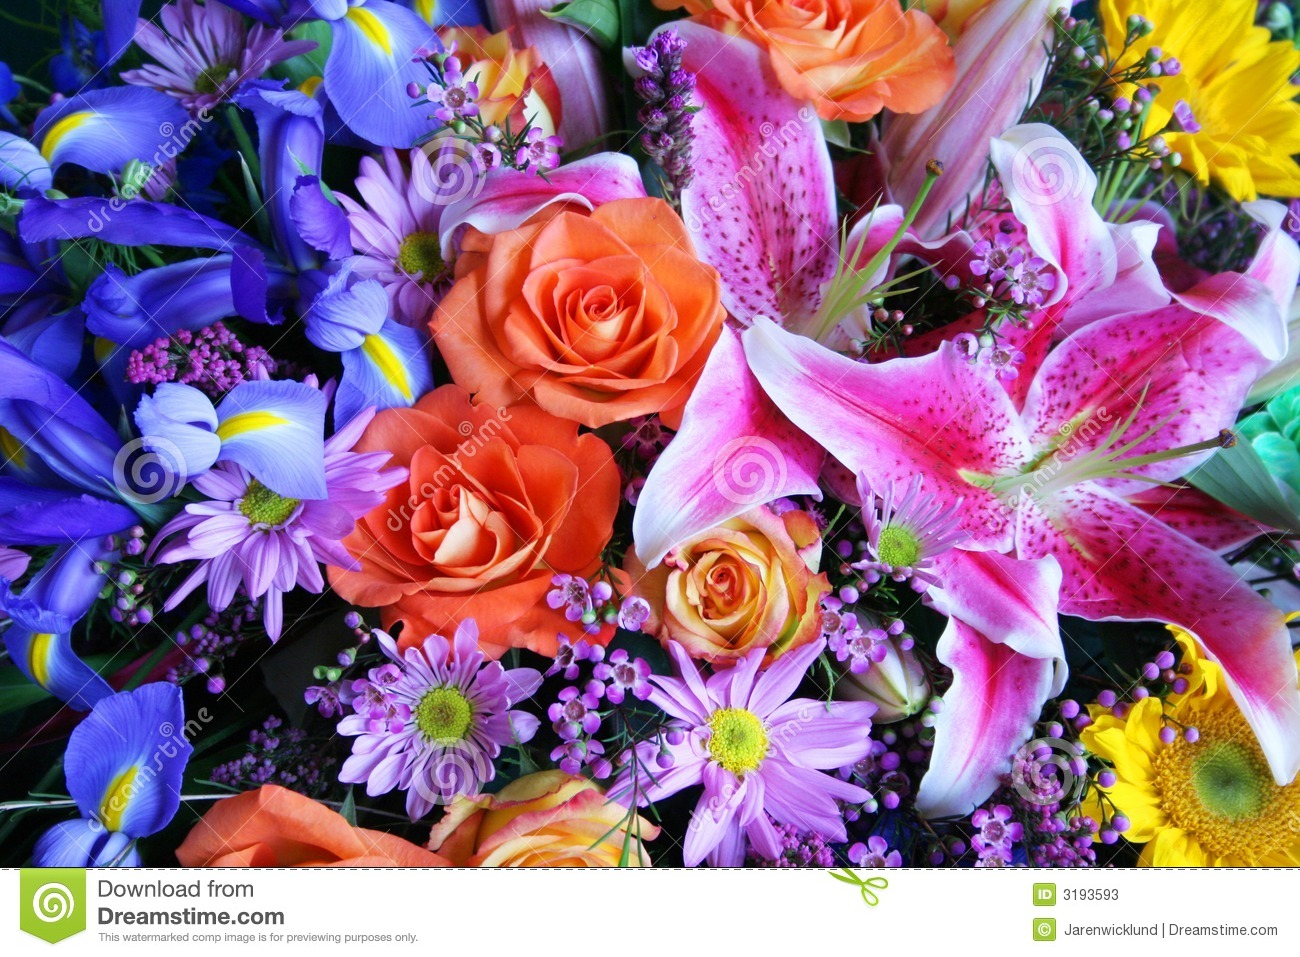 Huge bouquet of flowers stock photo. Image of green, chrysanthemum ...